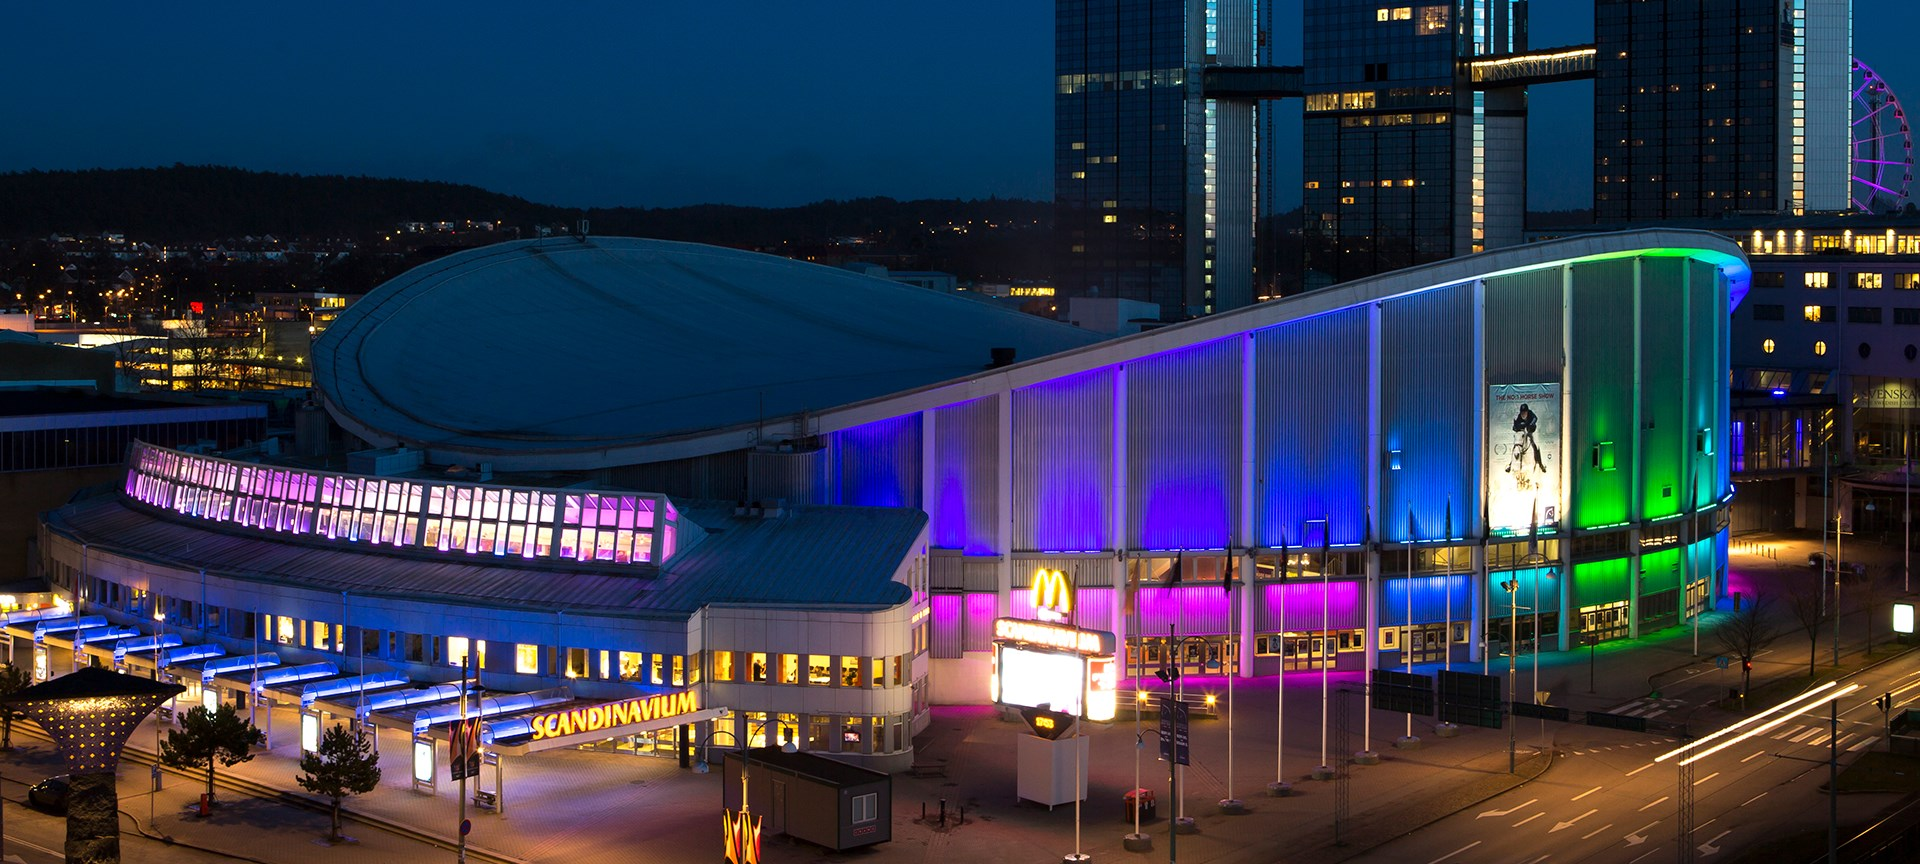 Scandinavium by night